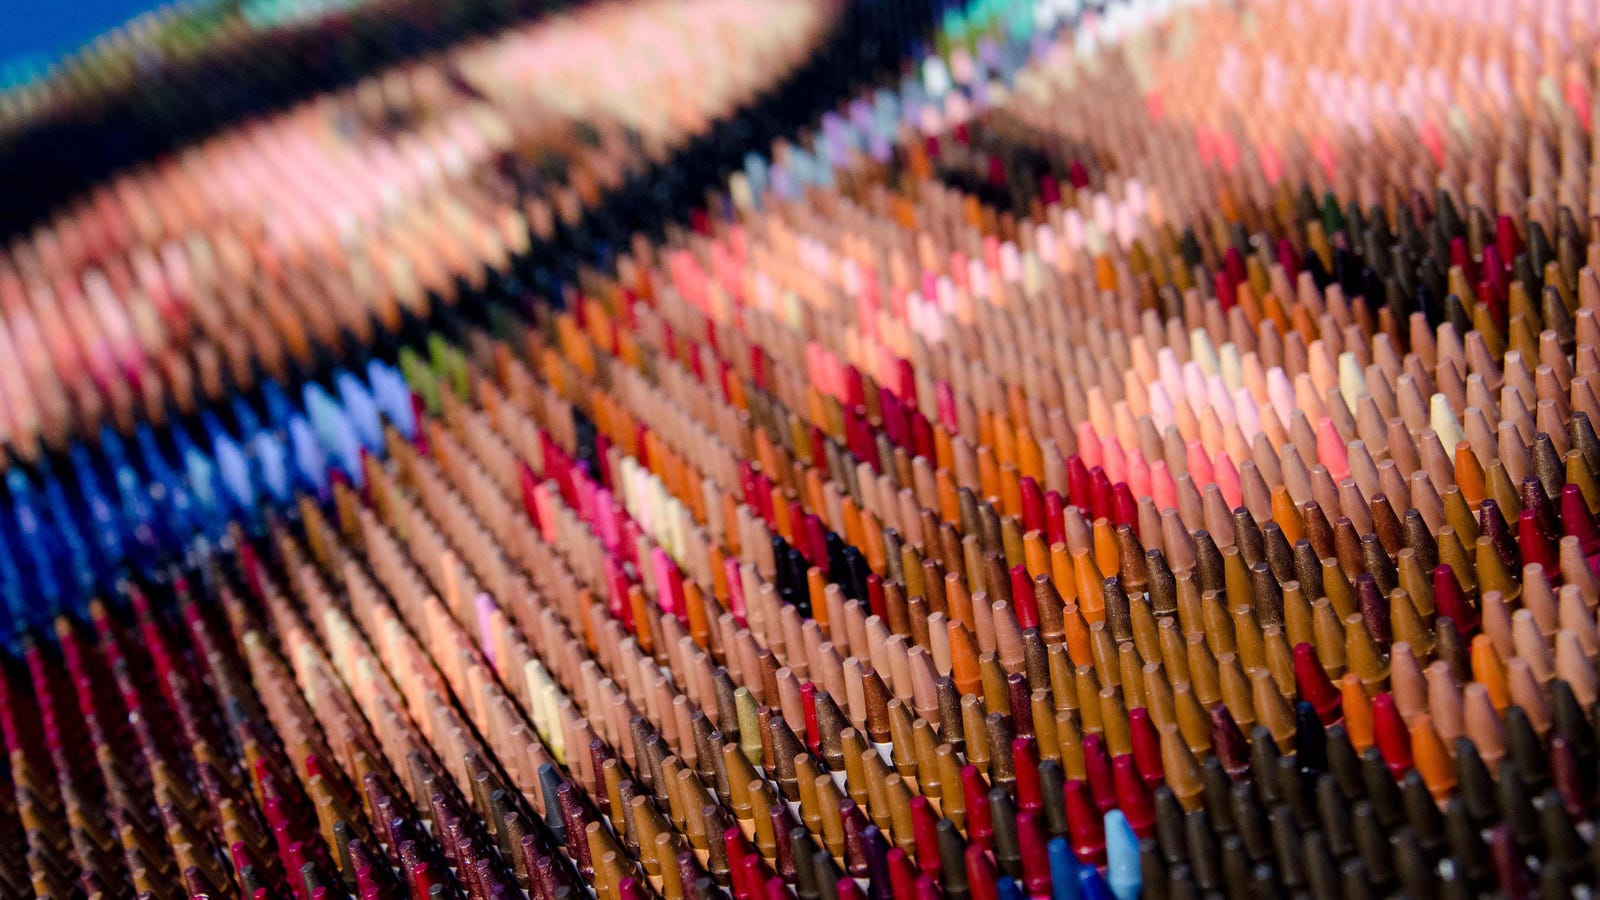 This Website Will Turn Your Photos Into Crayon Mosaic